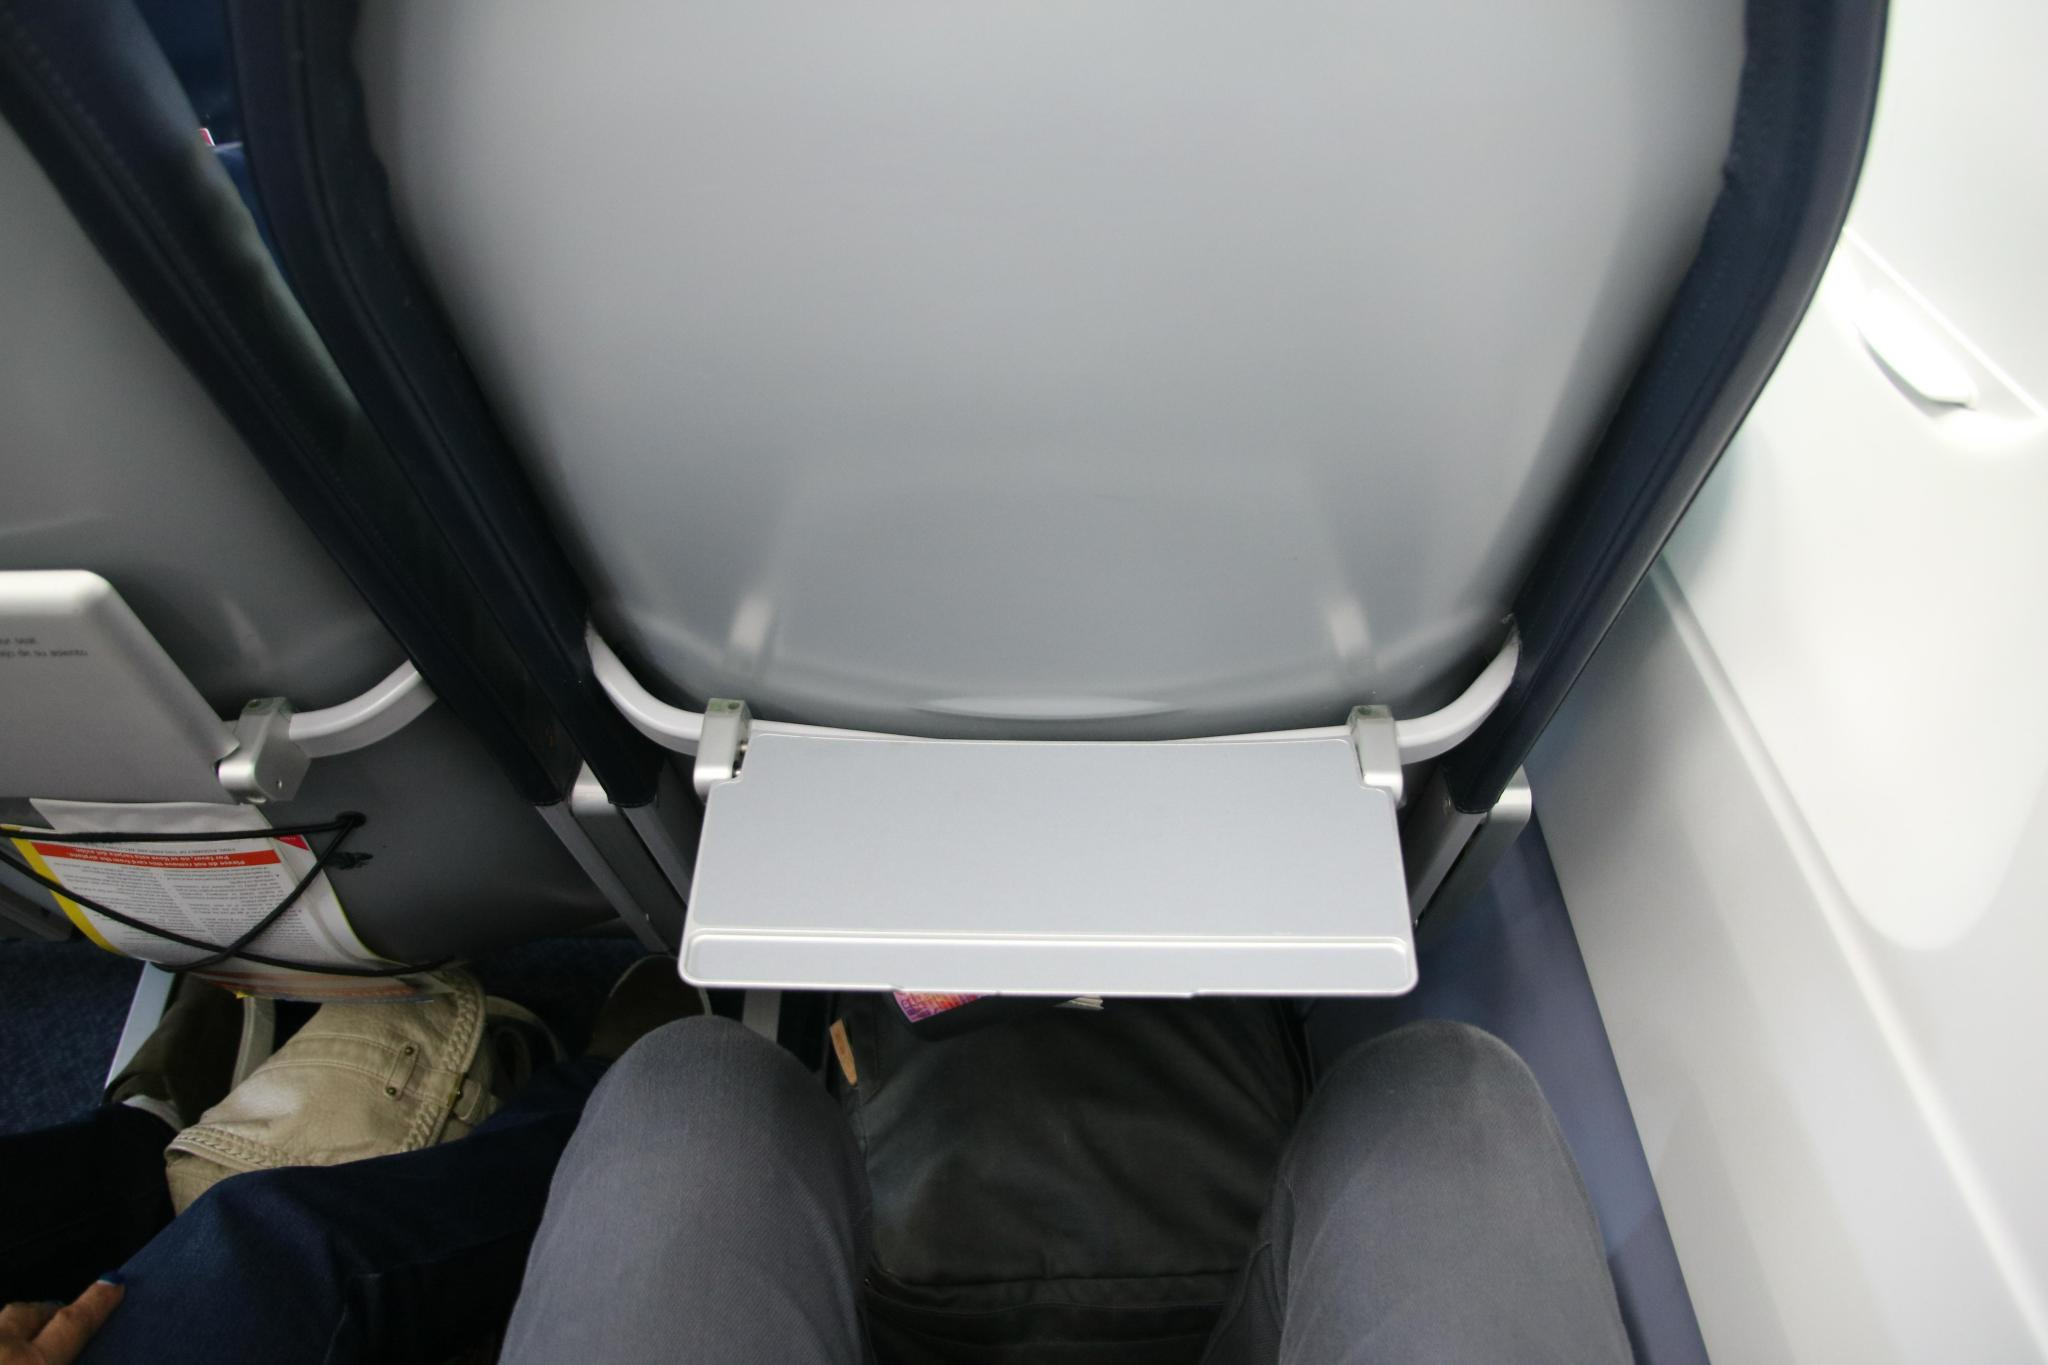 Spirit Airlines Airbus A321 200 Economy Class Standard Coach Seats pitch Legroom photos